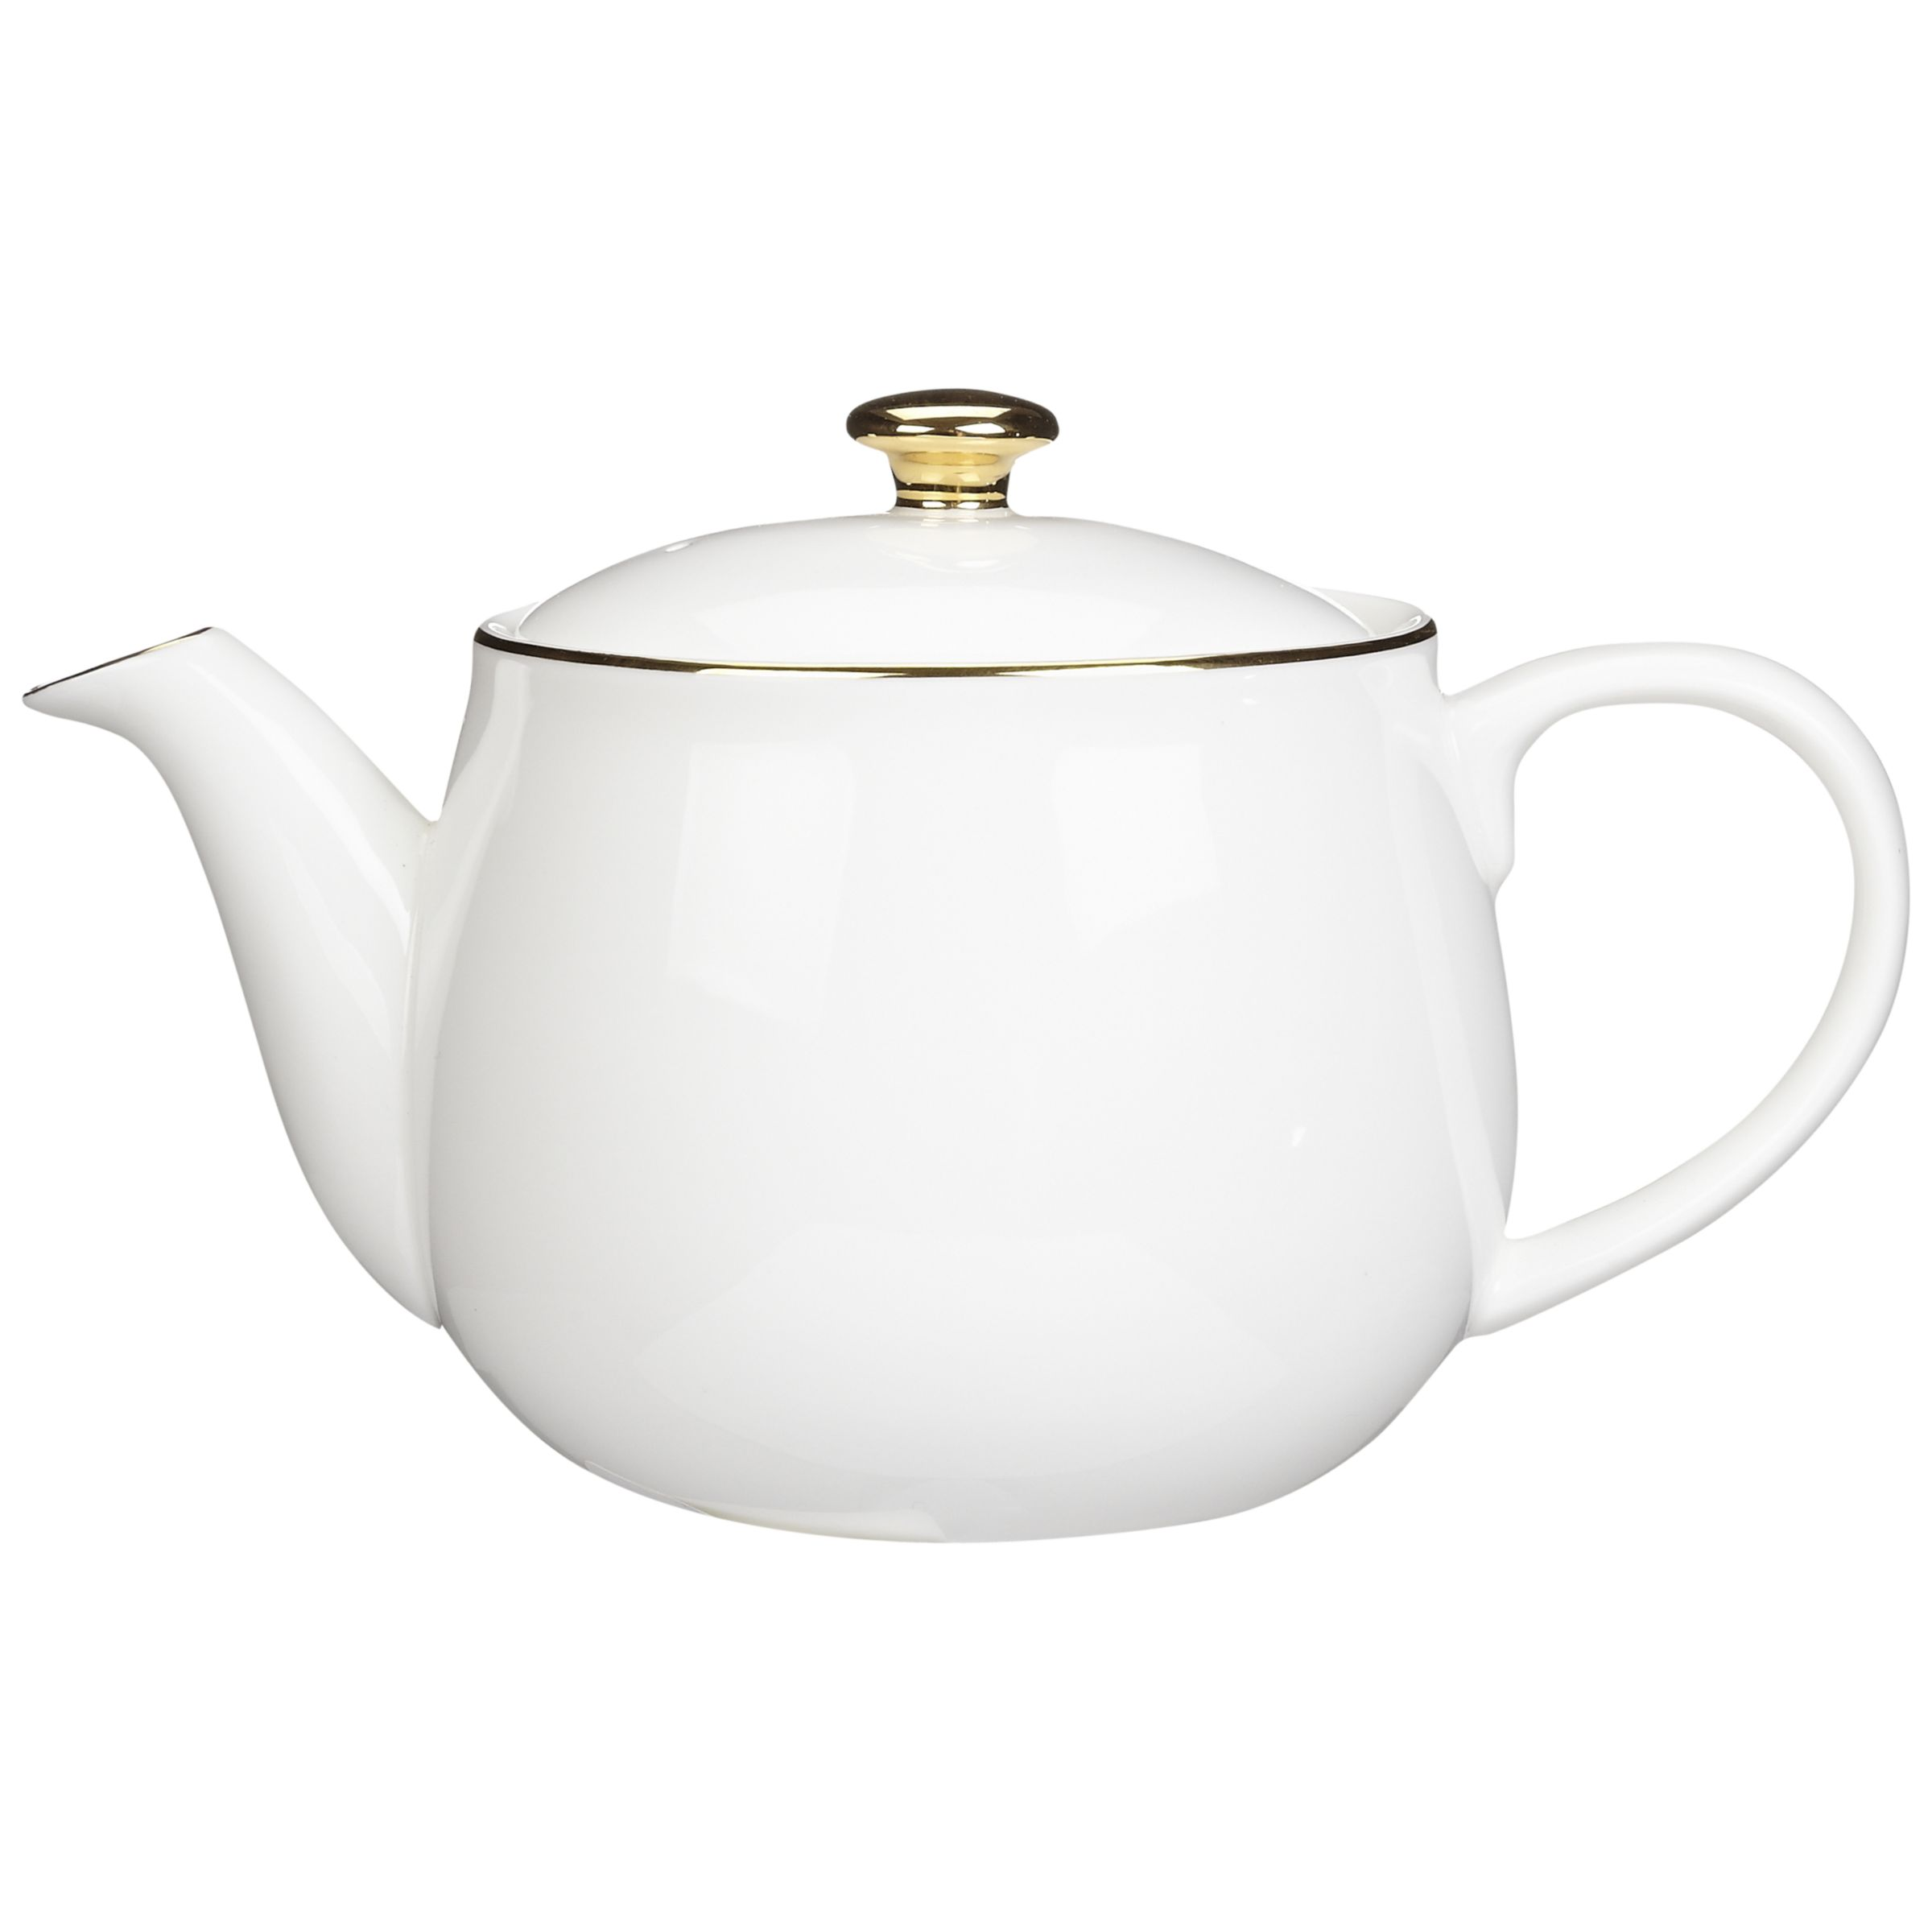 Queensberry Hunt for John Lewis Gold Band Teapot, 1.4L